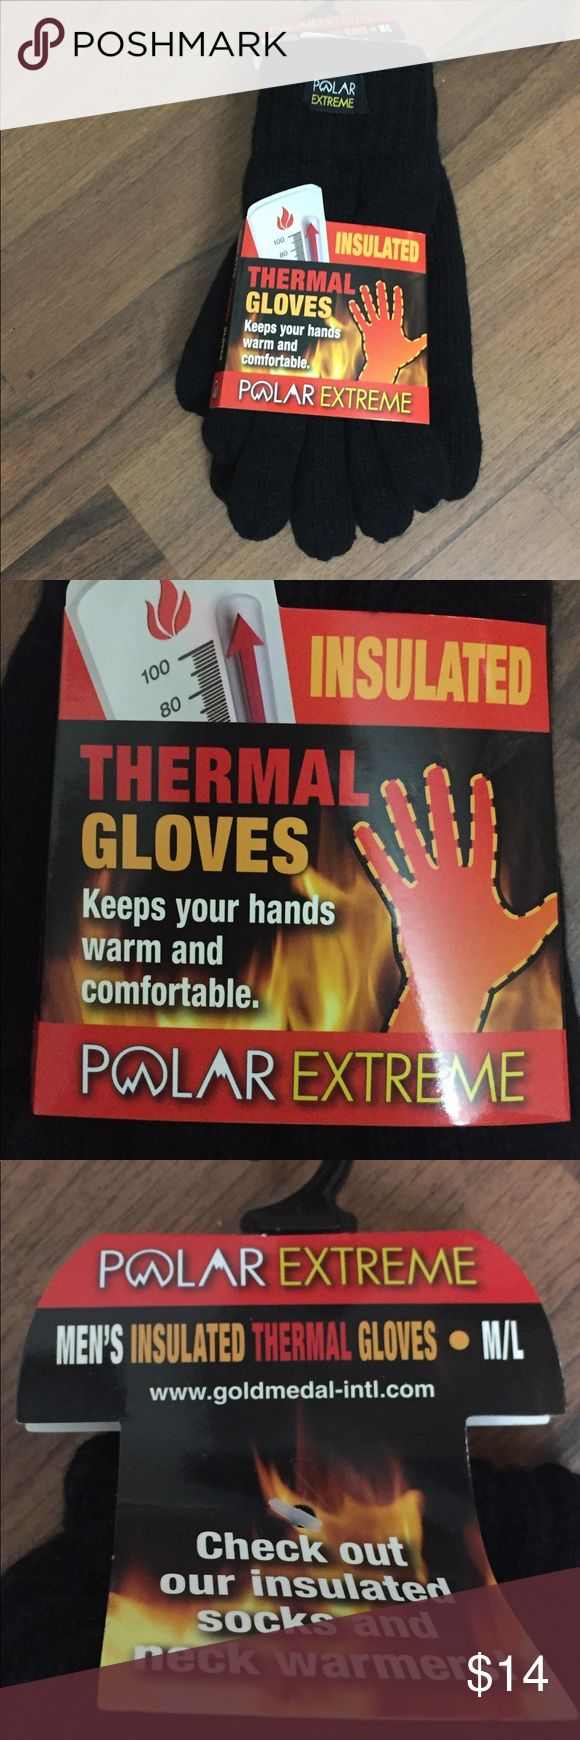 Thermal Insulated Gloves New In Package.   Men's Insulated thermal gloves.  Size medium / large (adult).  Polar Extreme. Warmth, comfort and performance. Accessories Gloves